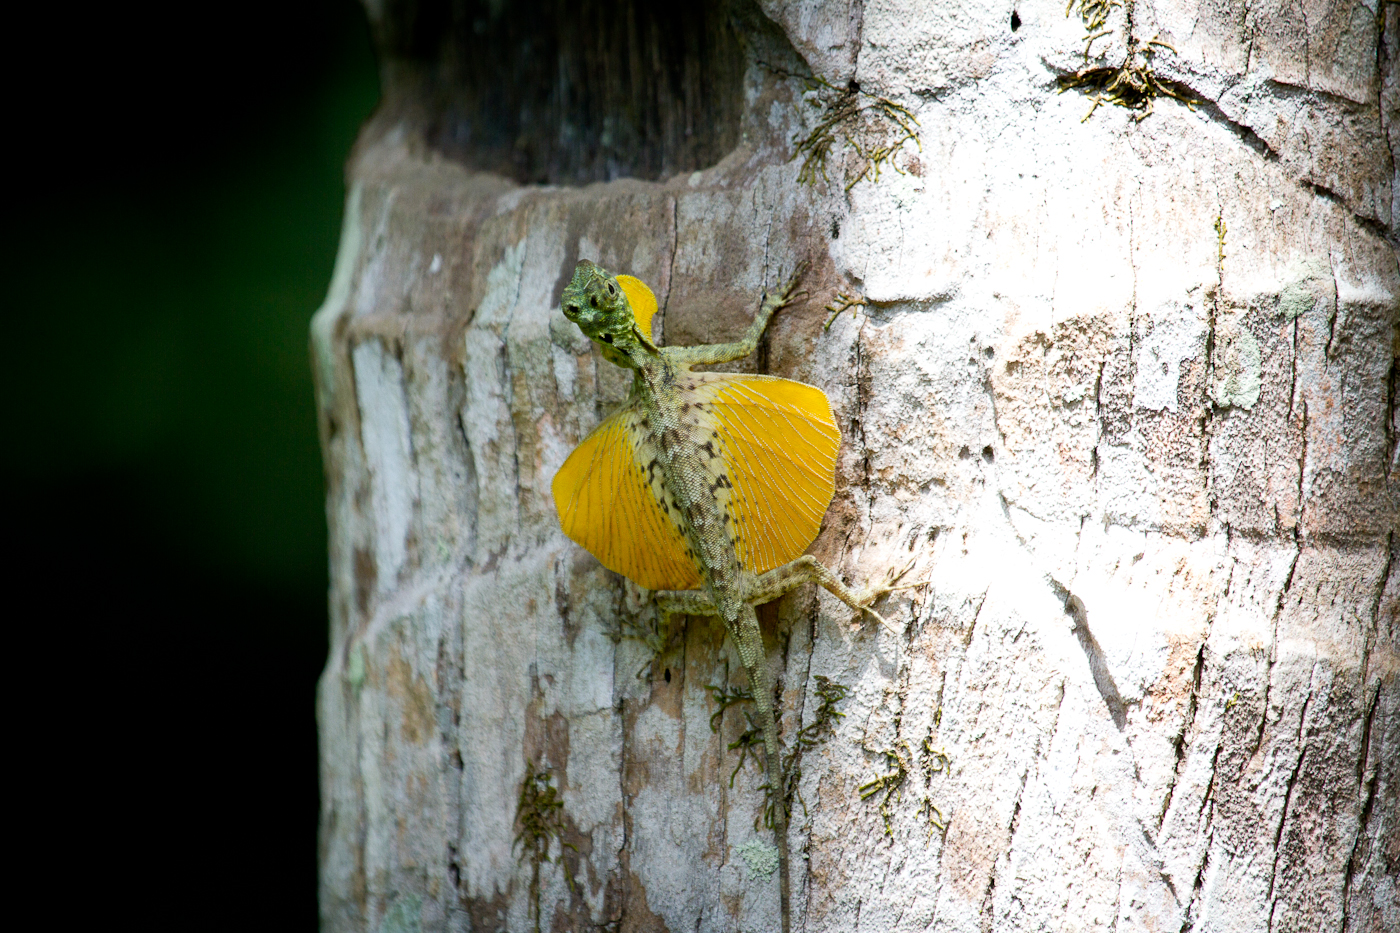 Flying Lizard in Tangkoko. These guys were fast flyers!